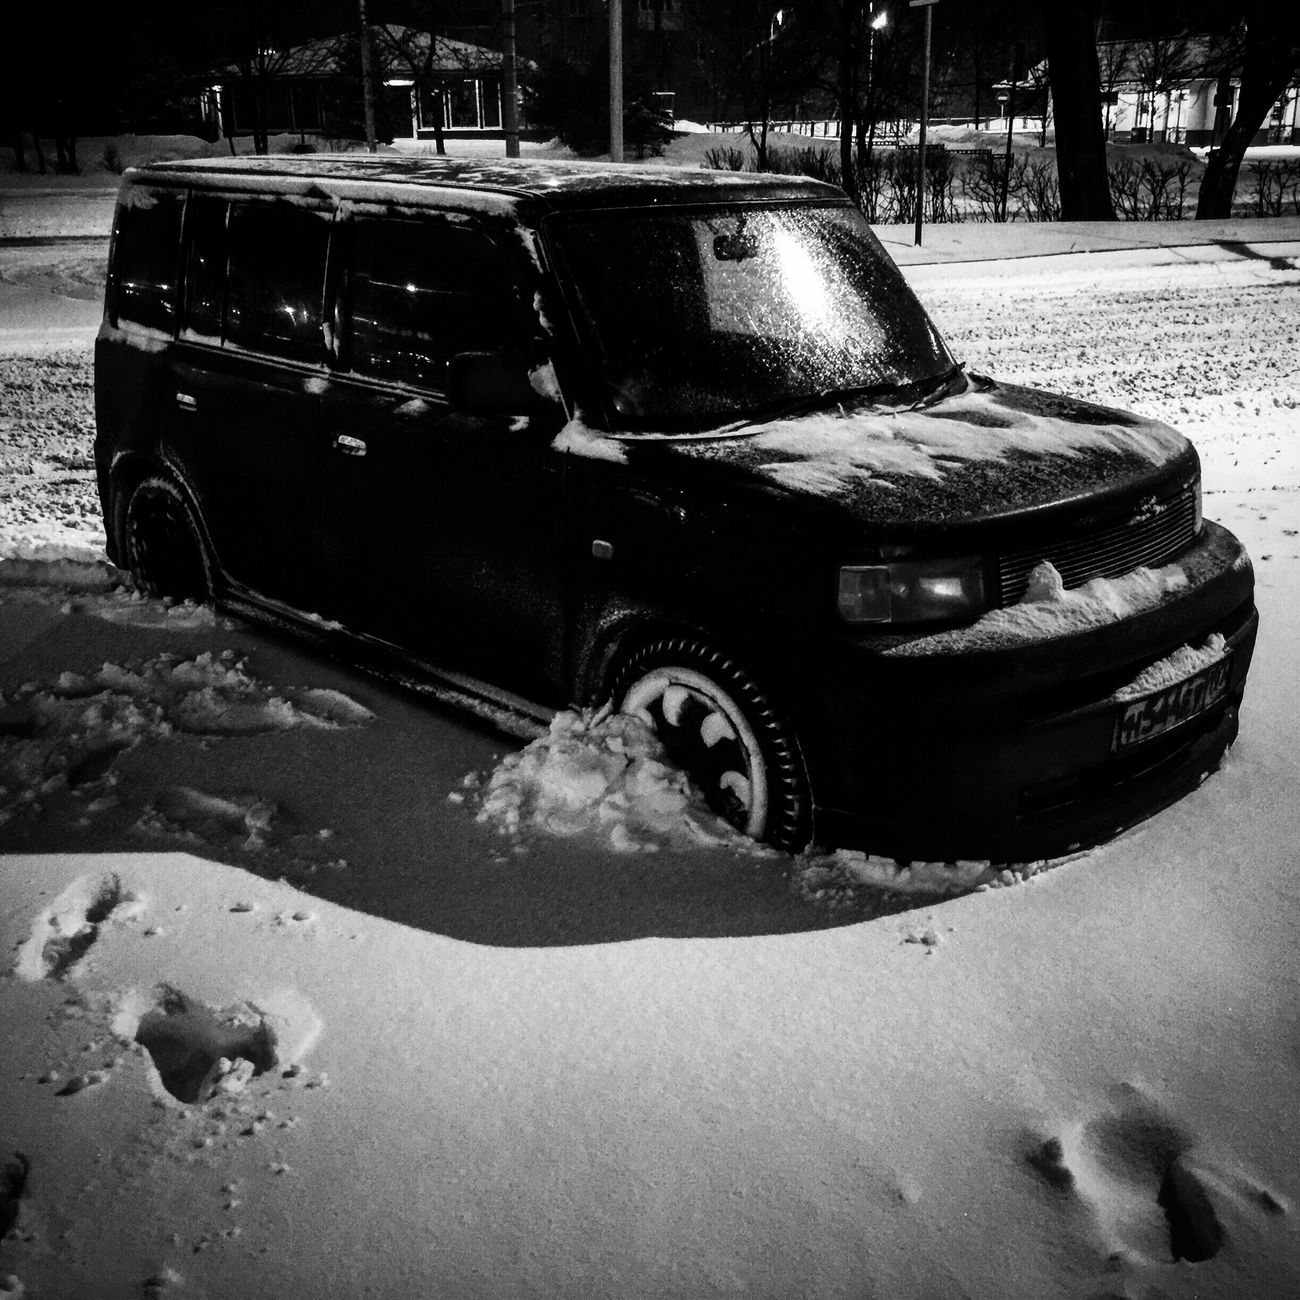 Car Transportation Abandoned Land Vehicle Outdoors Mode Of Transport Snow Toyota Toyota BB IPhoneography Shotoniphone6plus Watcharound No People Close-up